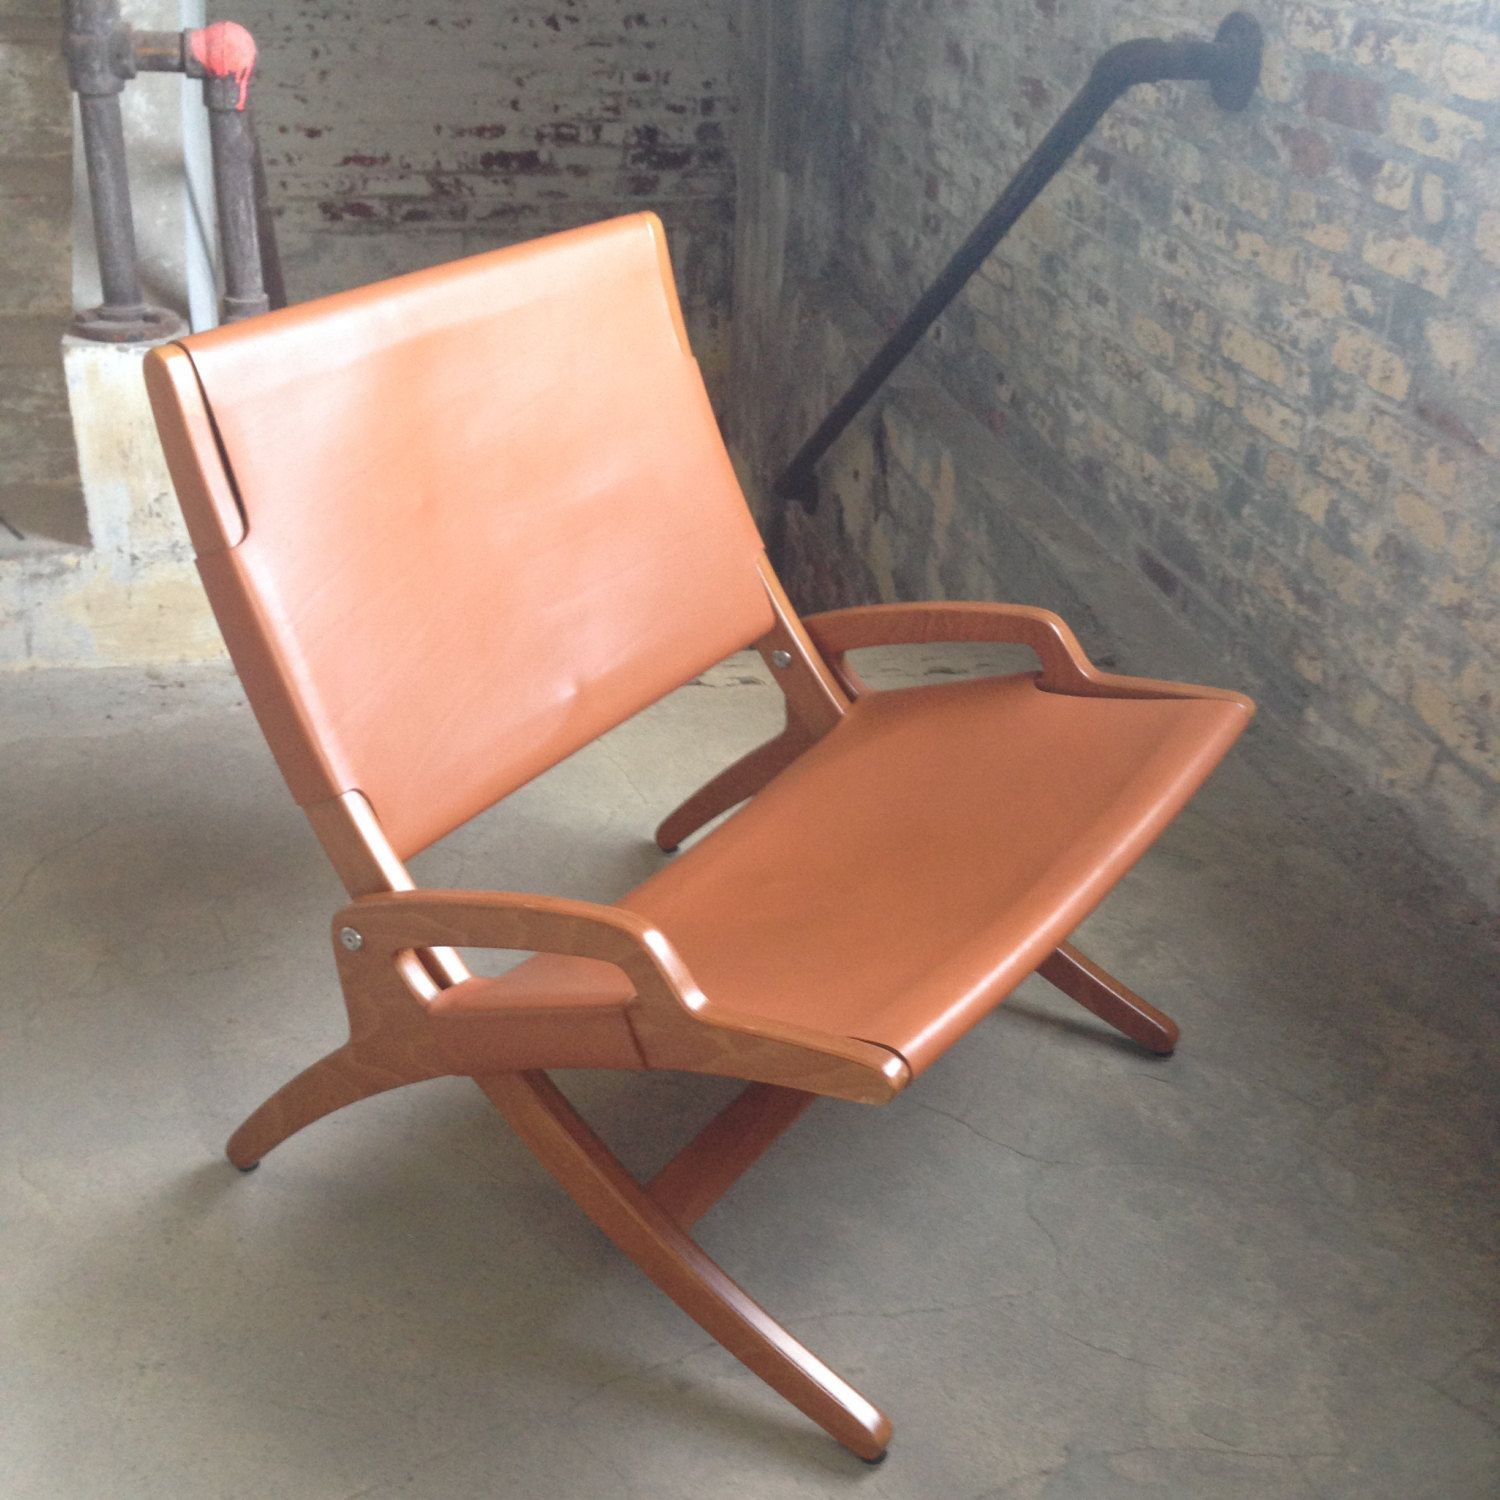 Vintage Leather Chair   Mid Century Hans Wegner Style Chair   Modern Danish  Leather Folding Chair   Danish Chair   Unusual Danish Chair By  DareToBeVintage ...